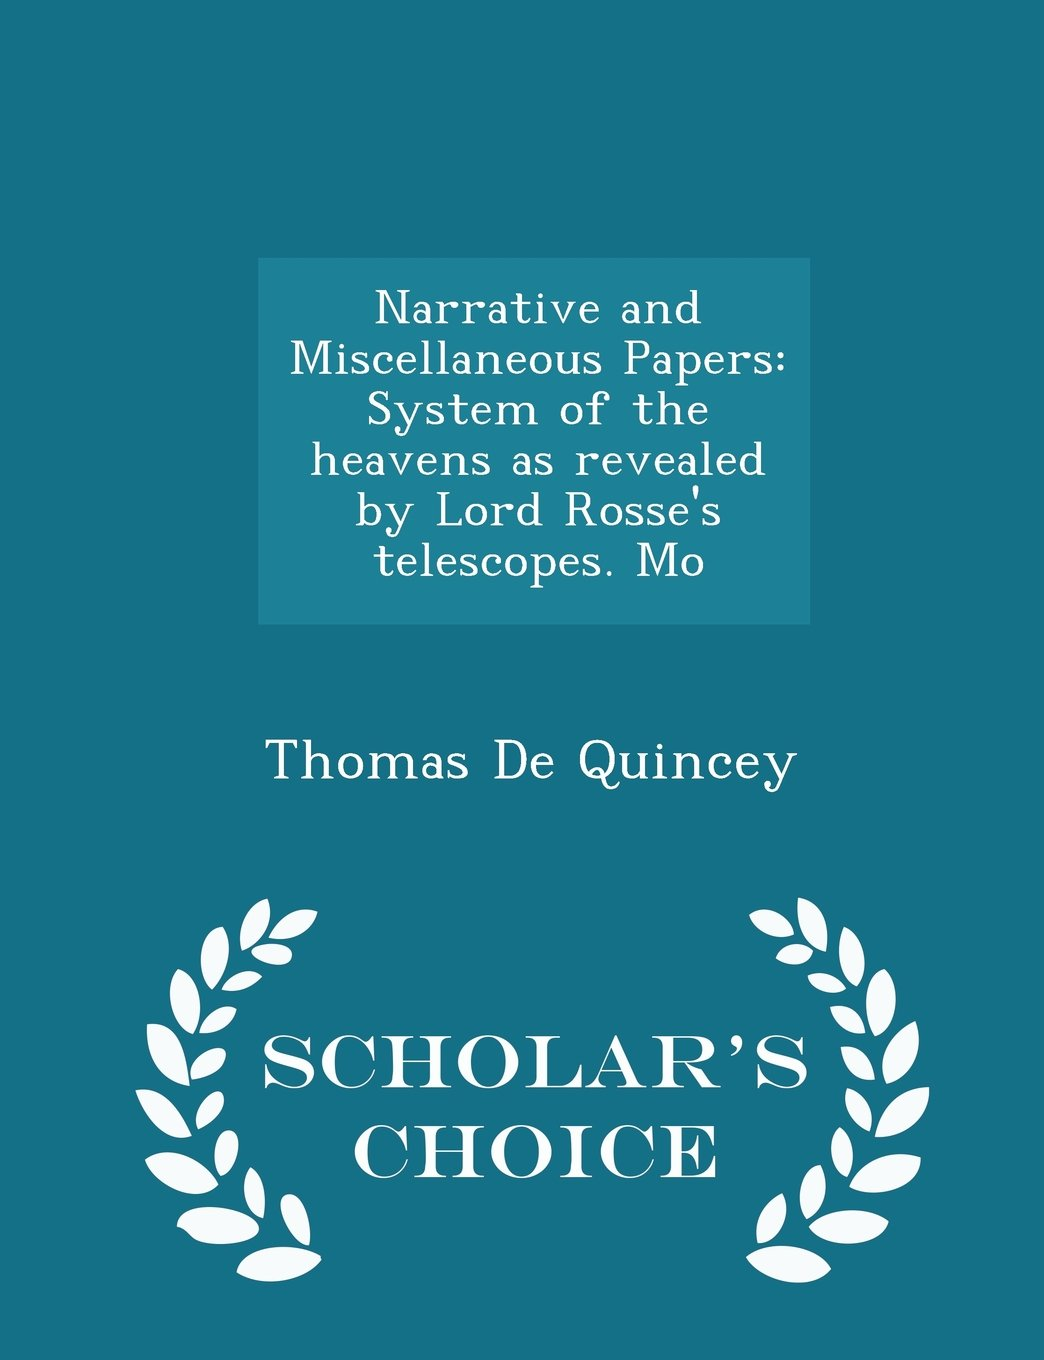 Download Narrative and Miscellaneous Papers: System of the heavens as revealed by Lord Rosse's telescopes. Mo - Scholar's Choice Edition pdf